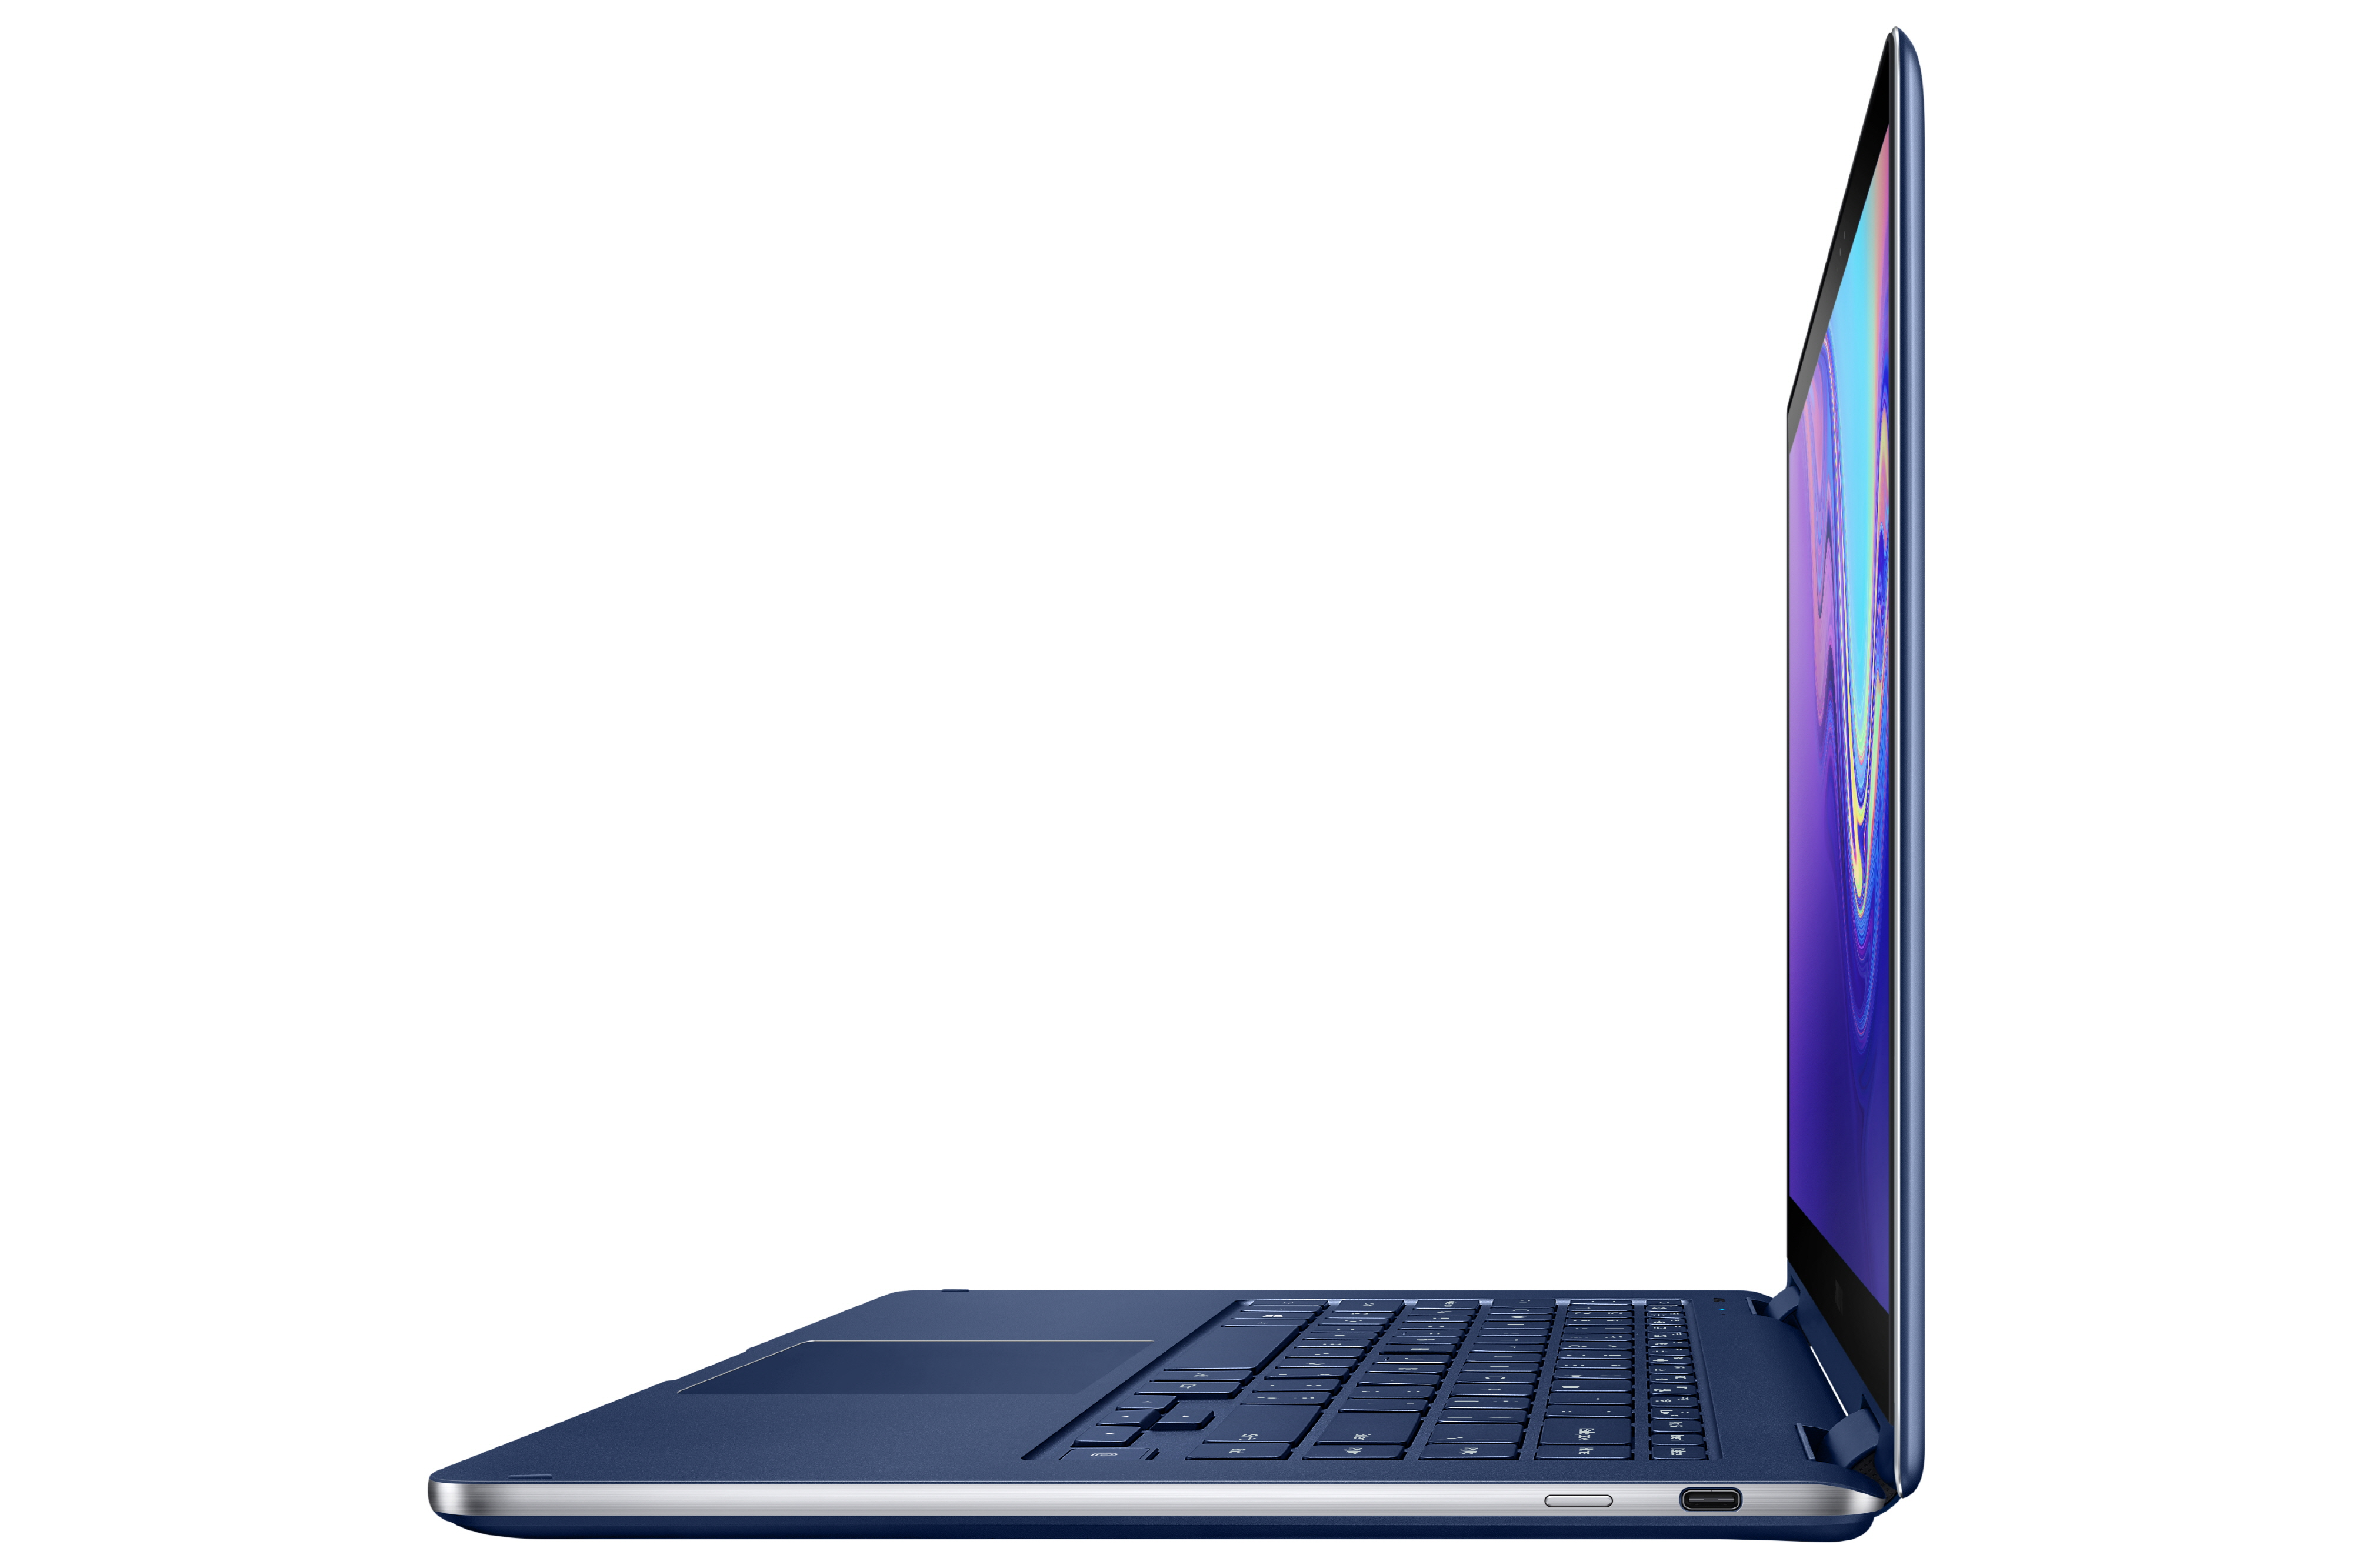 Notebook 9 Pen